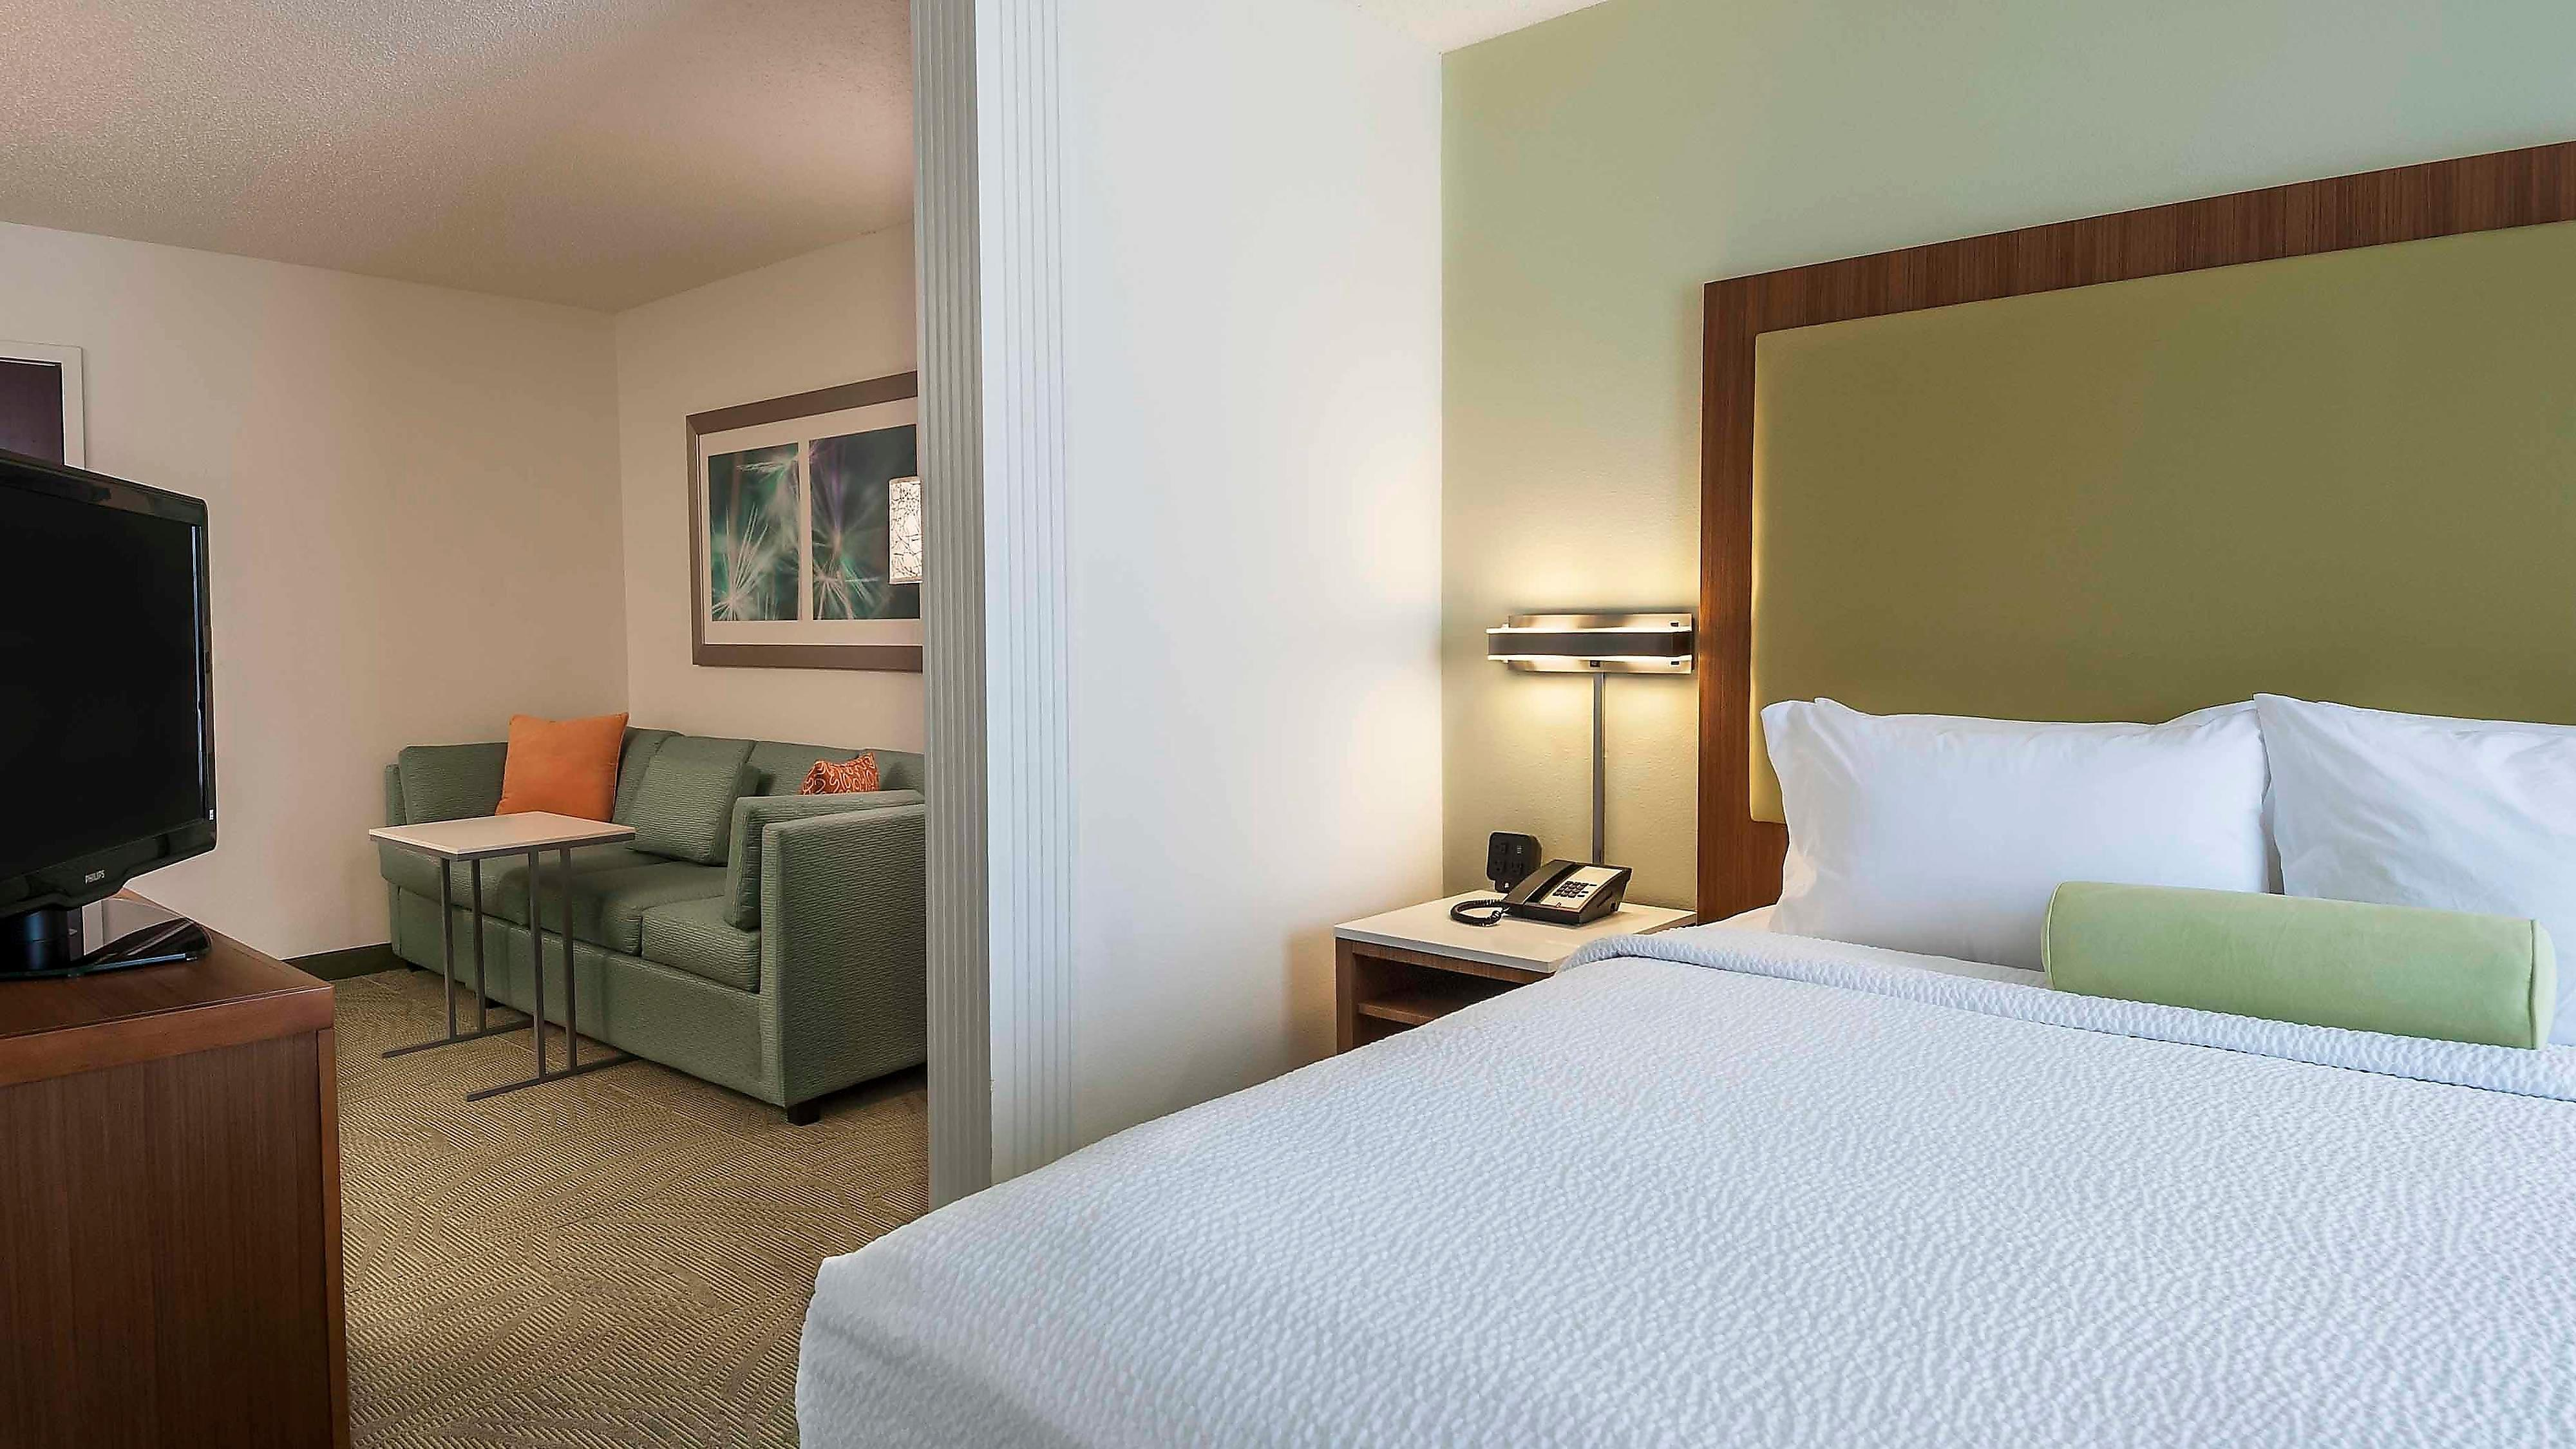 SpringHill Suites by Marriott Baton Rouge South image 7